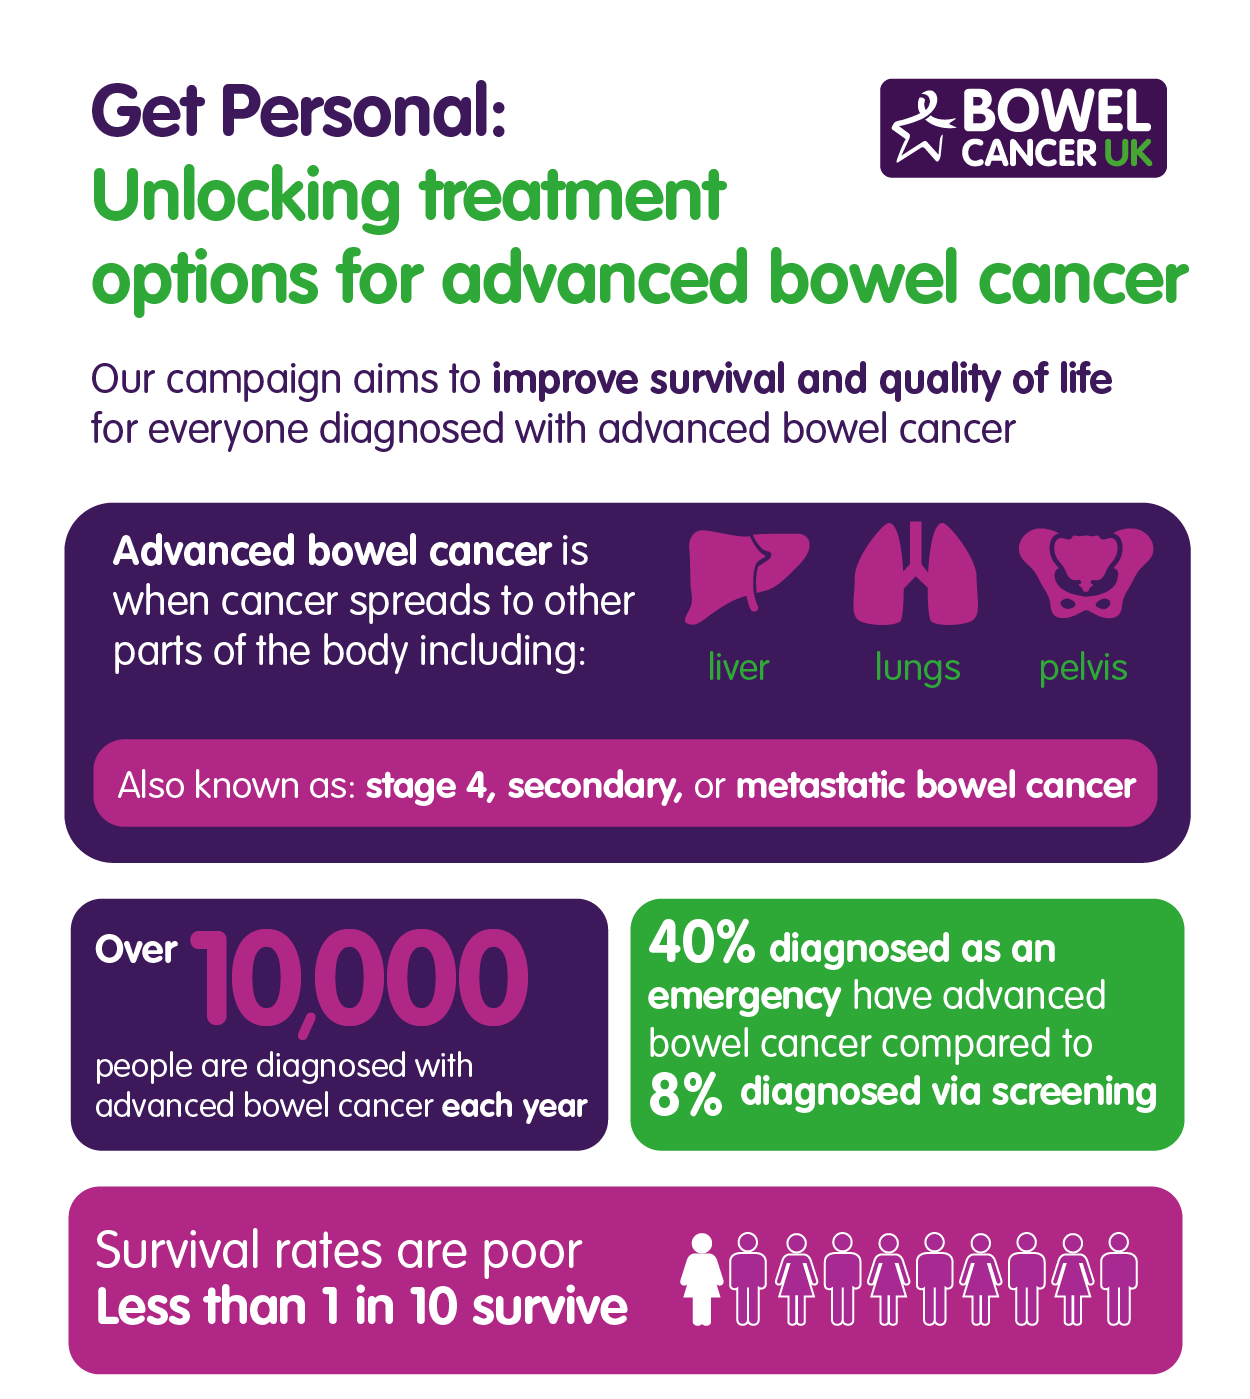 Advanced Bowel Cancer Patients Denied Surgery To Extend Their Life Bowel Cancer Uk